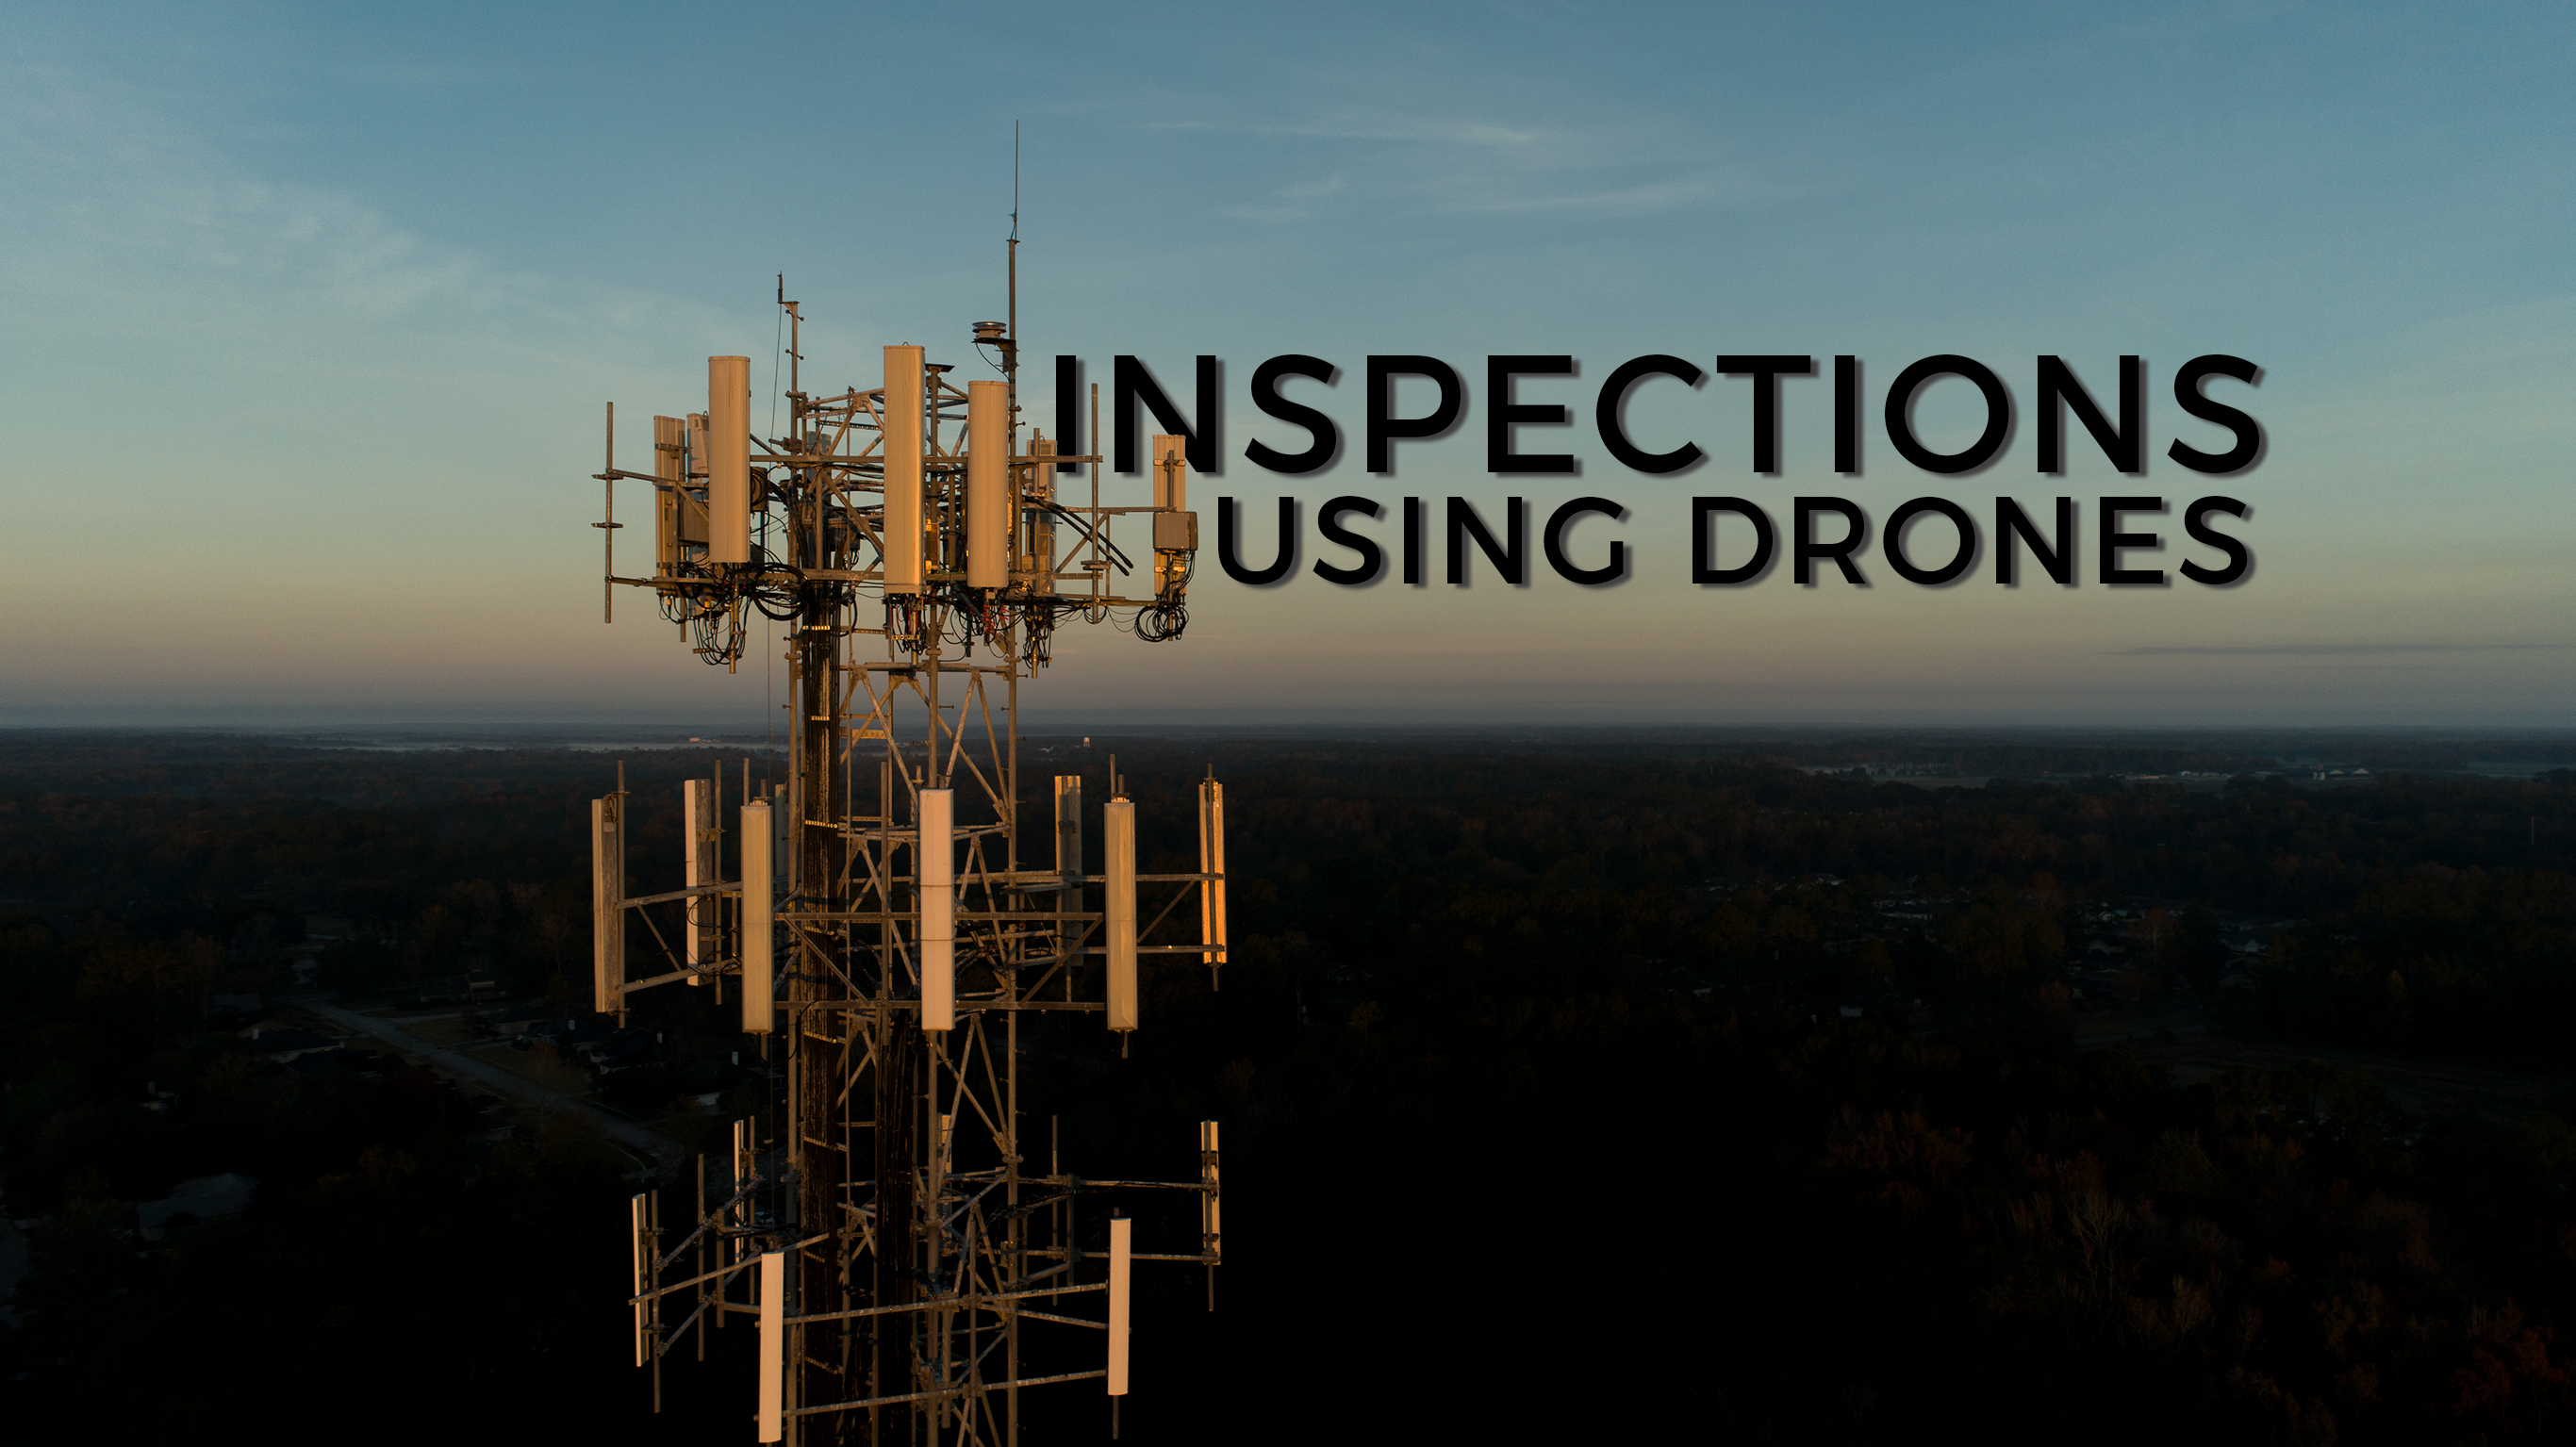 Industrial Inspections using drones.